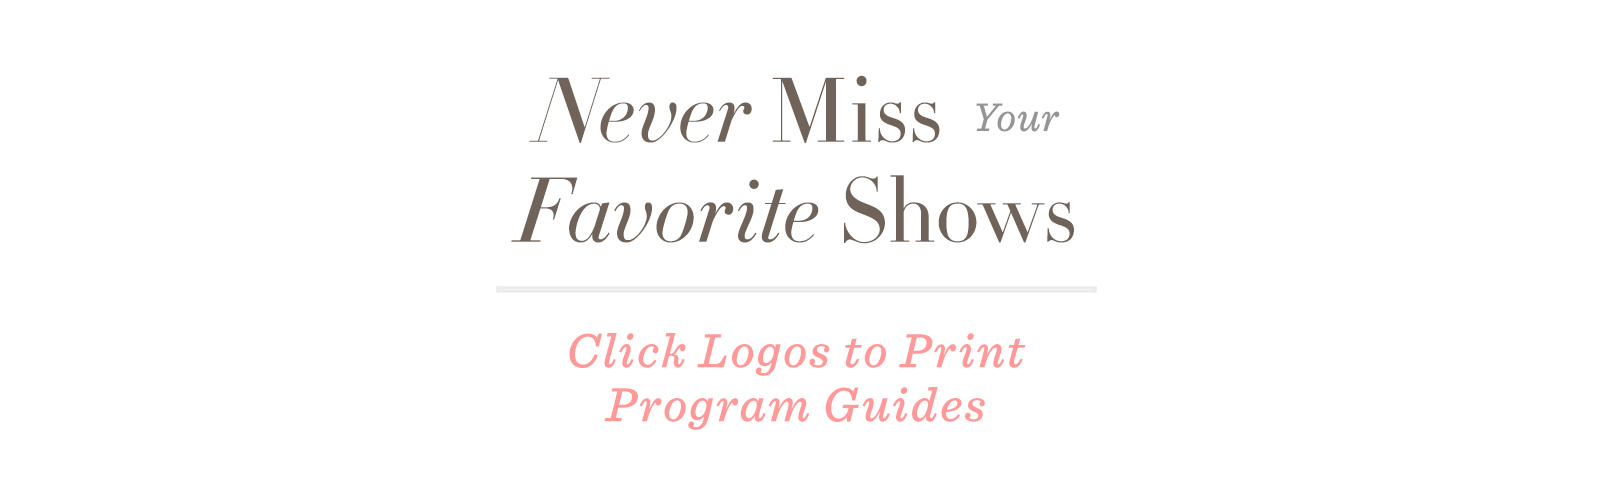 Never Miss Your Favorite Shows. Click Logos to Print Program Guides